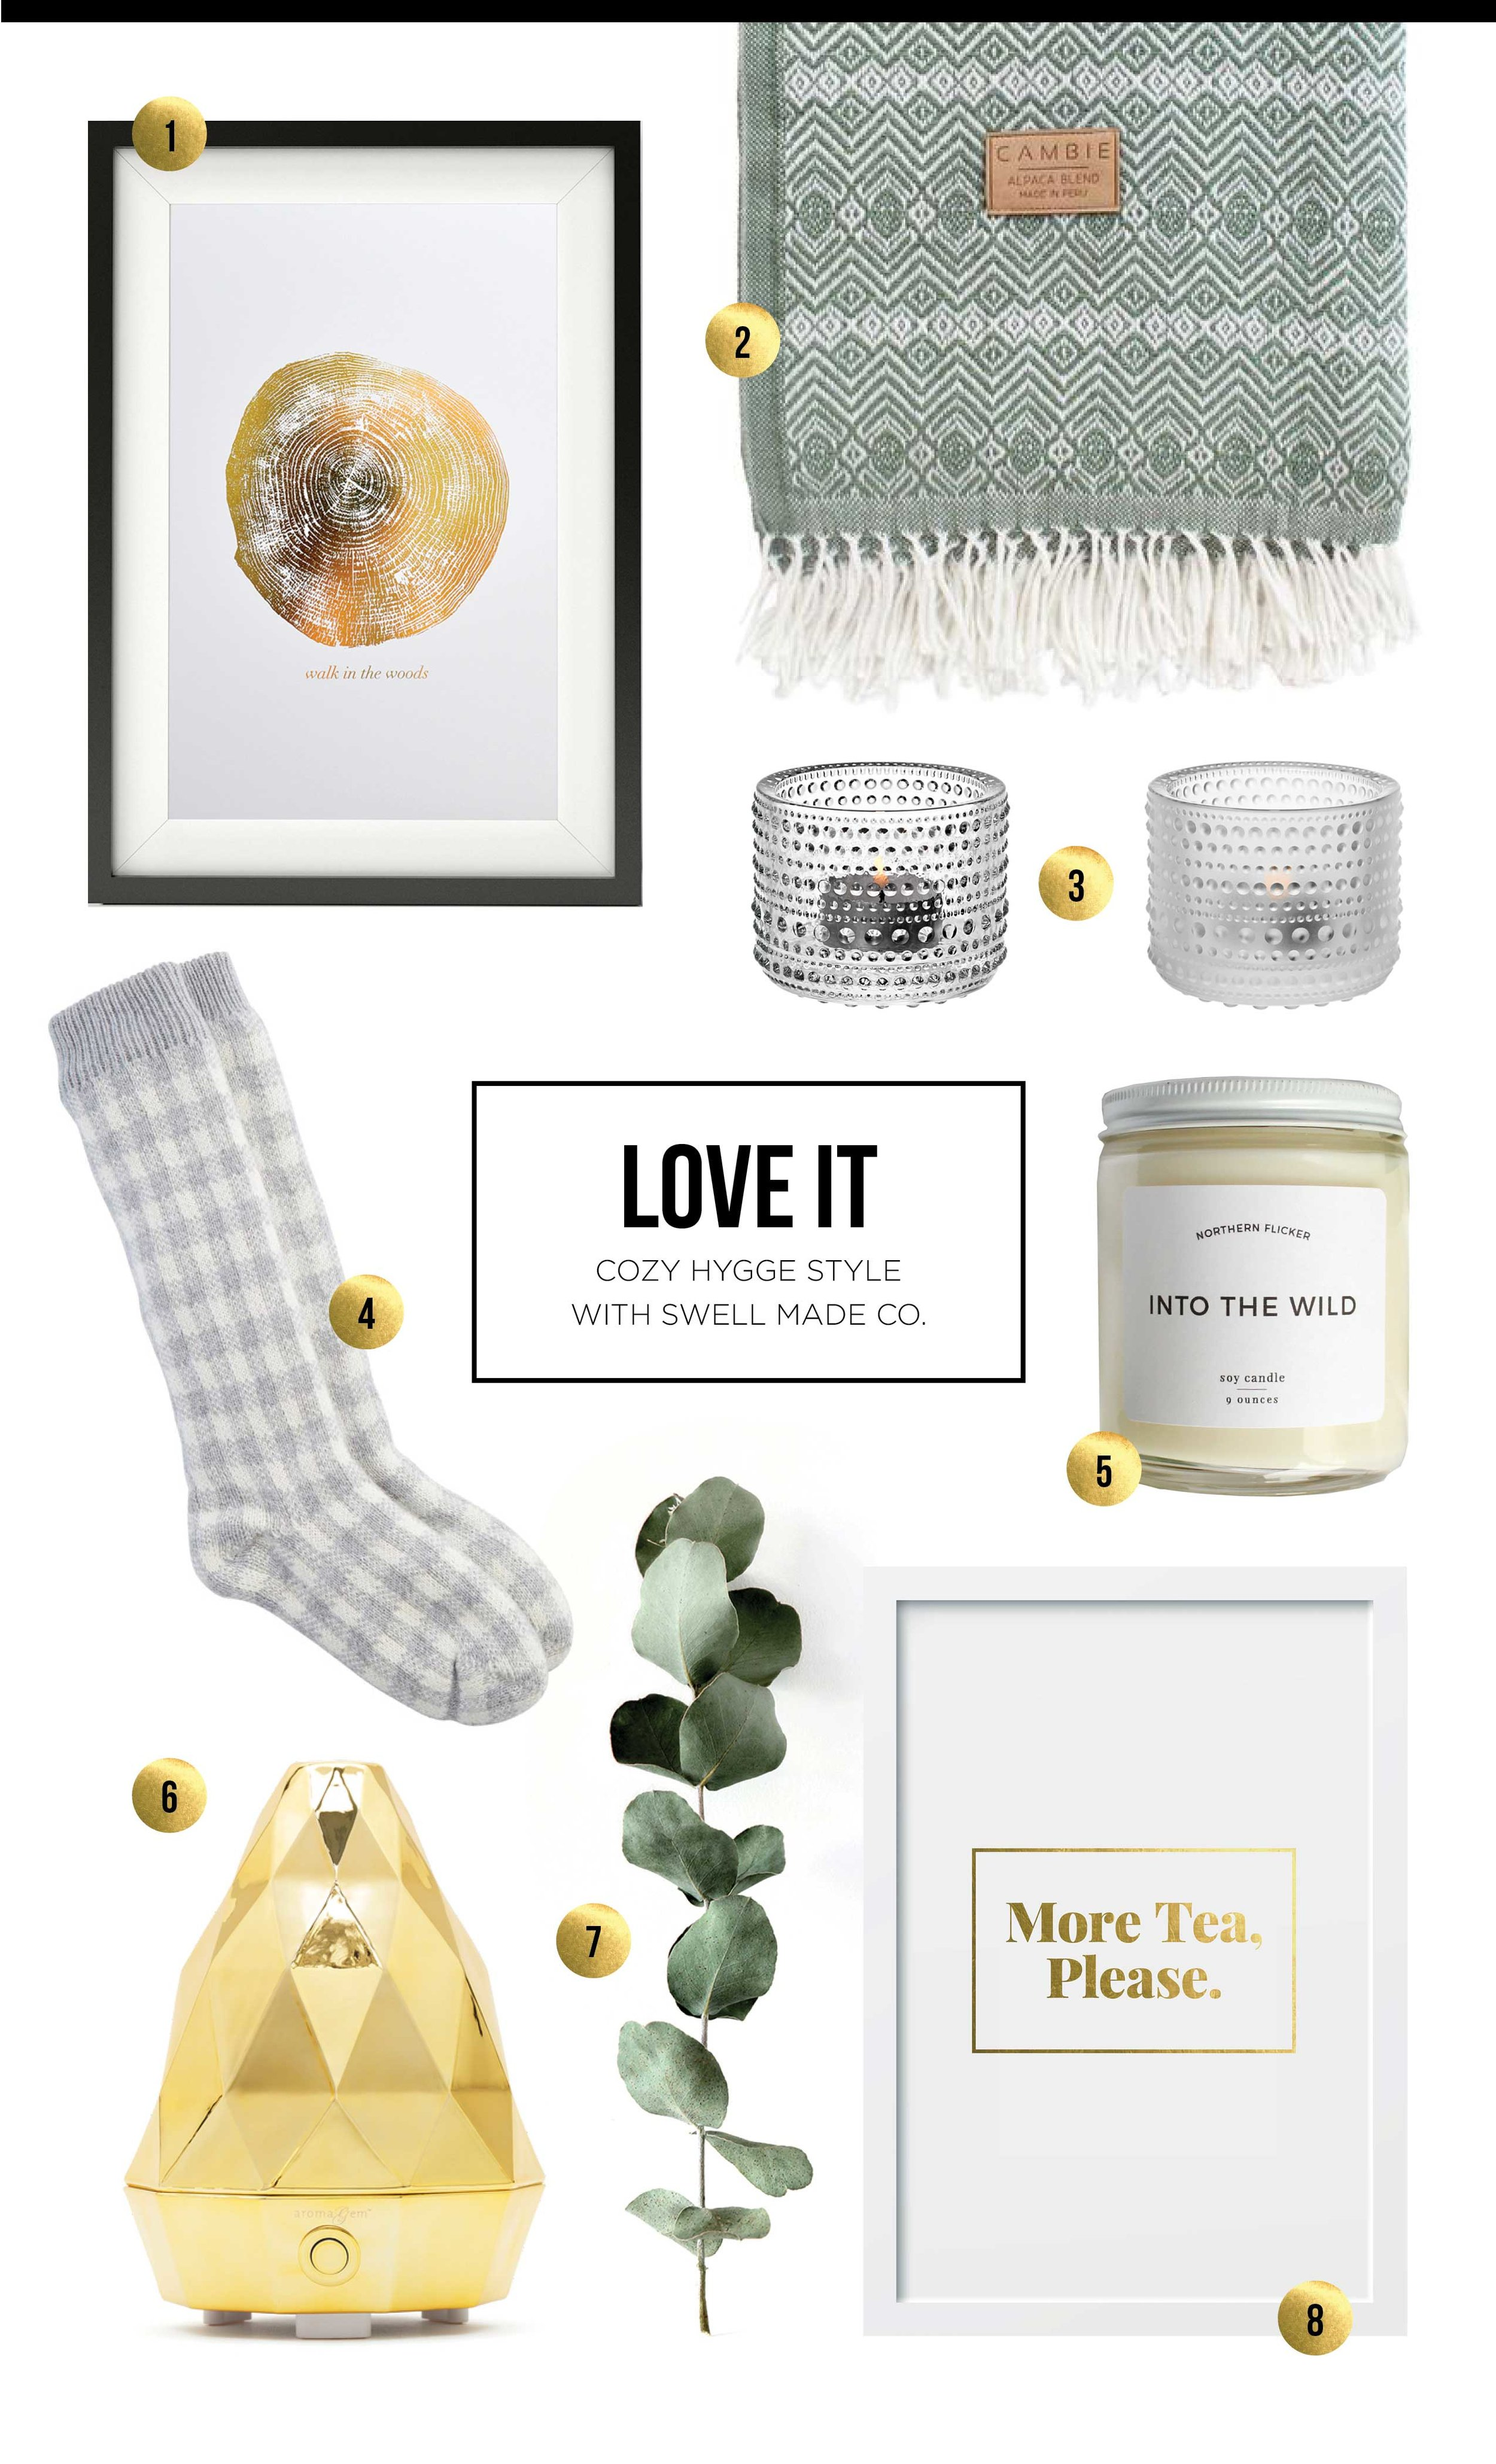 LOVE IT - Cozy Hygge style with Swell Made Co.